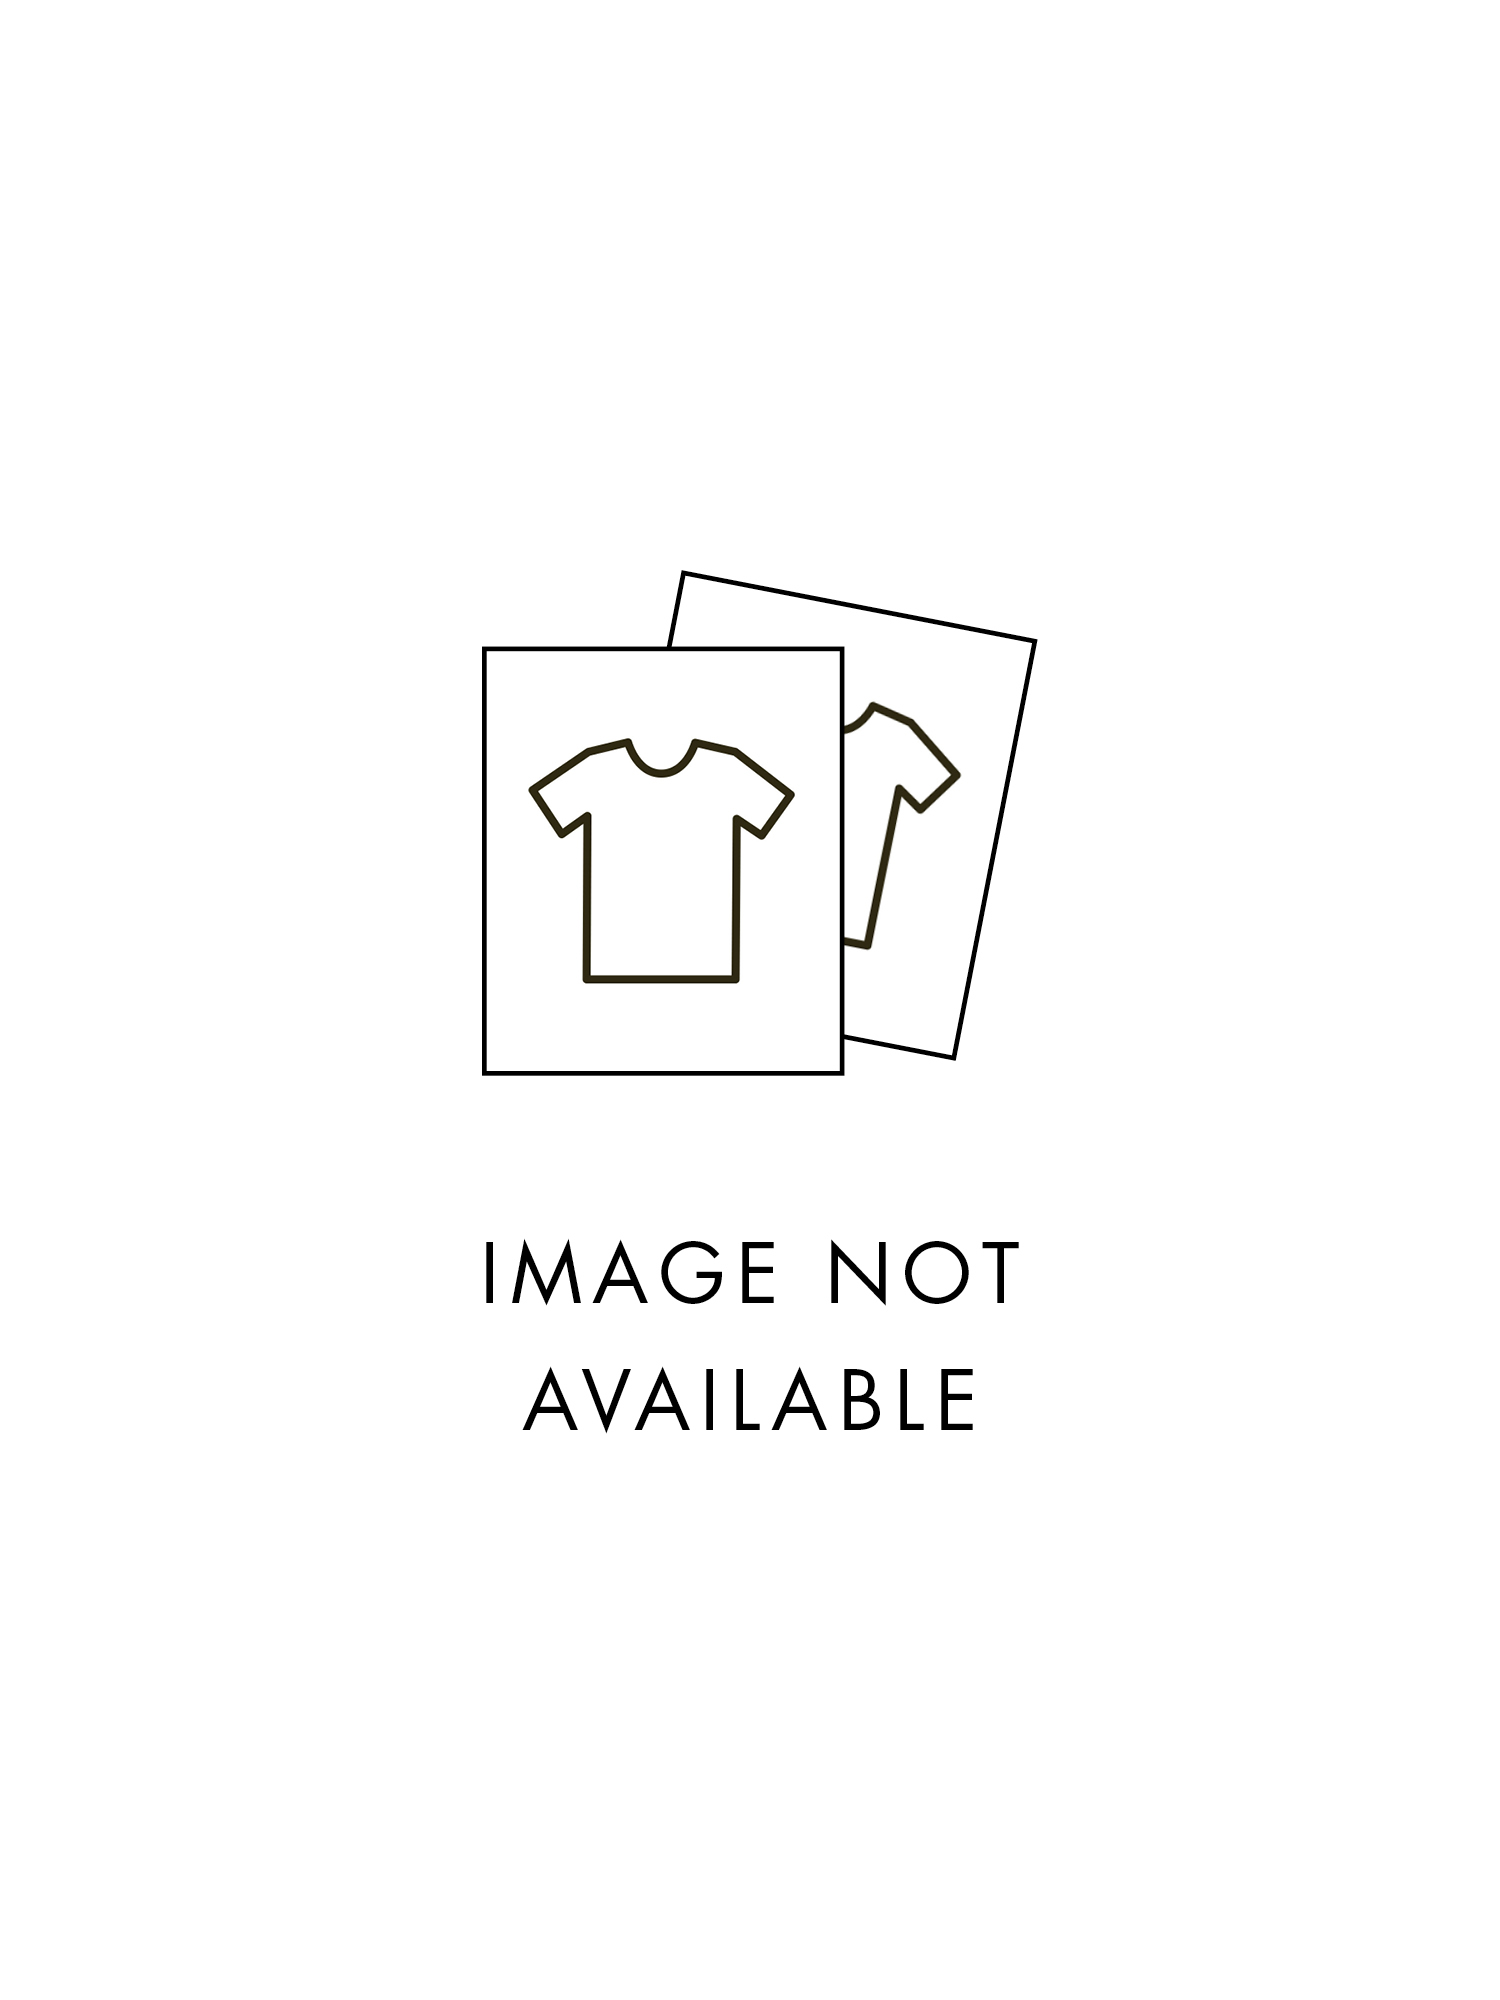 HANRO_B_M_CottonSuperior_ShortlegPants_073090_070199_040.jpg